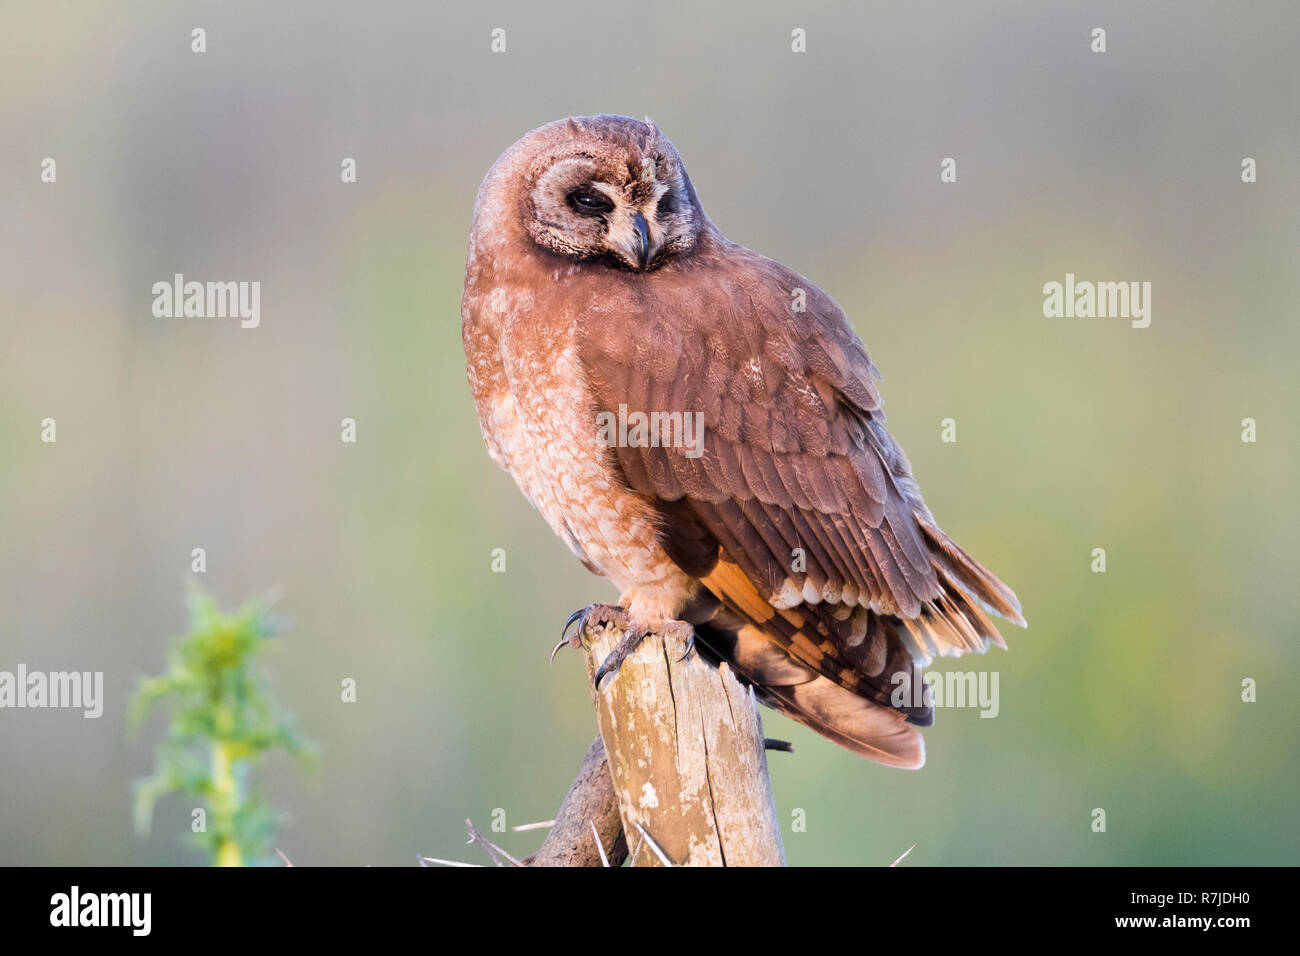 Marsh Owl (Asio capensis tingitanus), adult perched on a post in Morocco - Stock Image